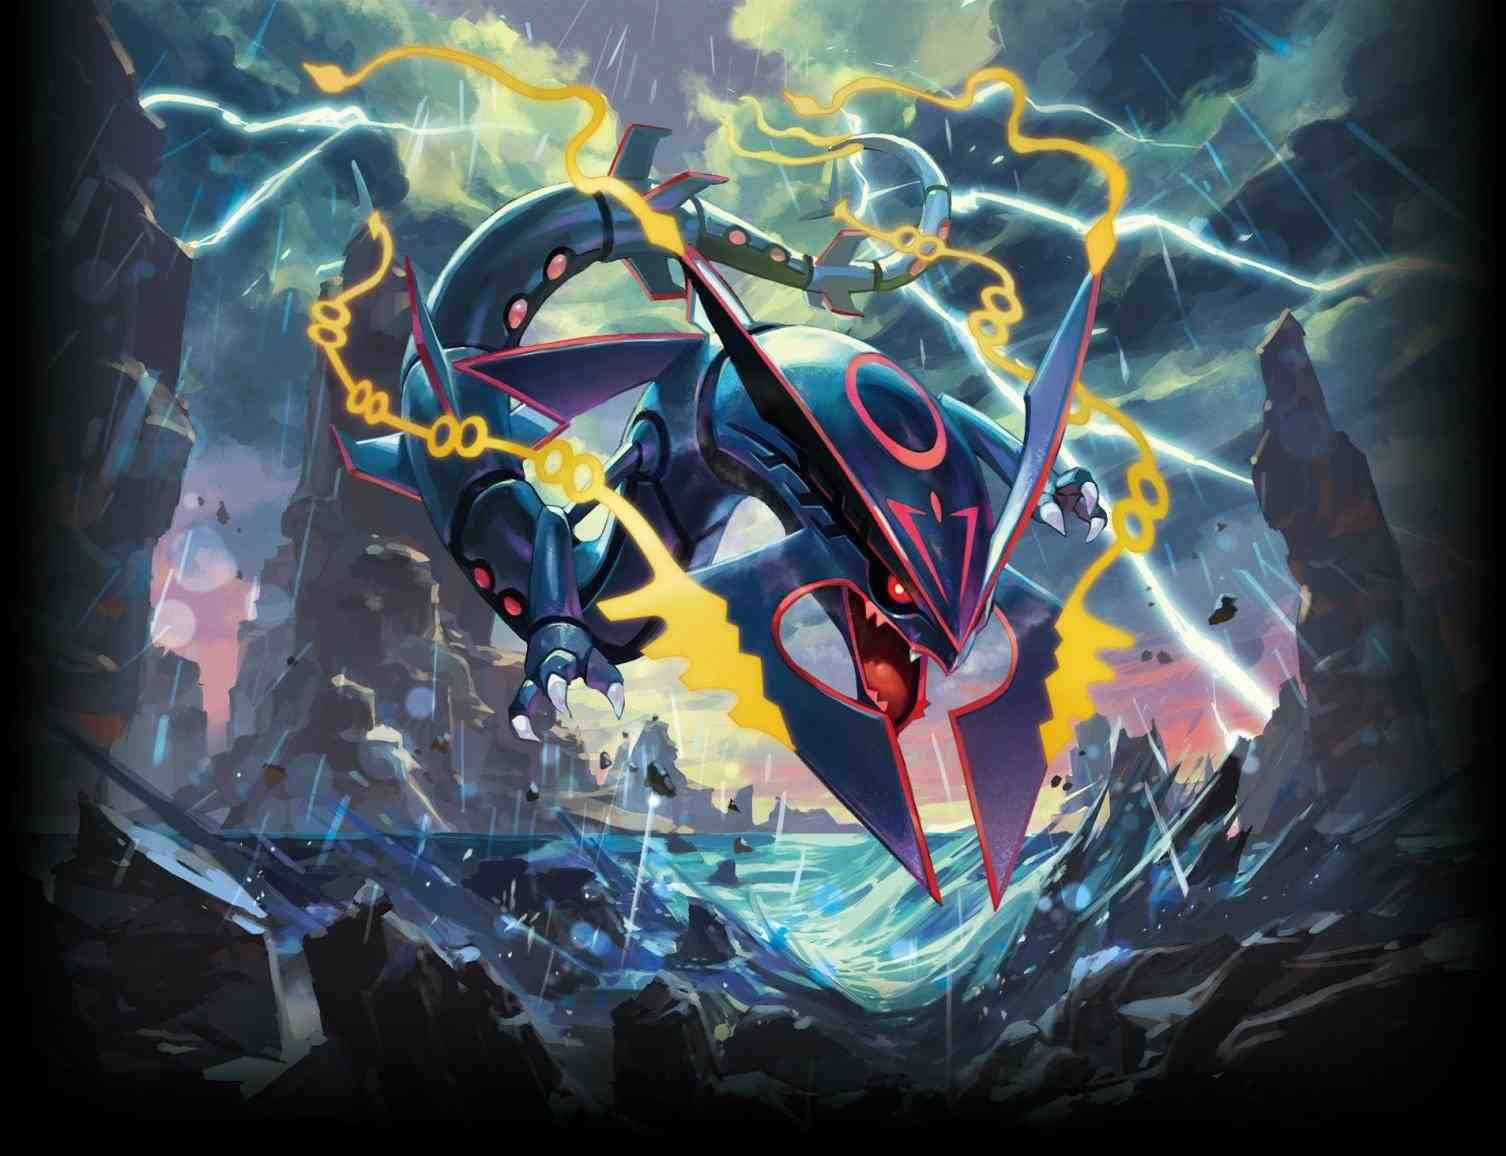 Pokemon Ausmalbilder Sumpex : Pokemon Shiny Mega Rayquaza Wallpaper Pokemon Pinterest